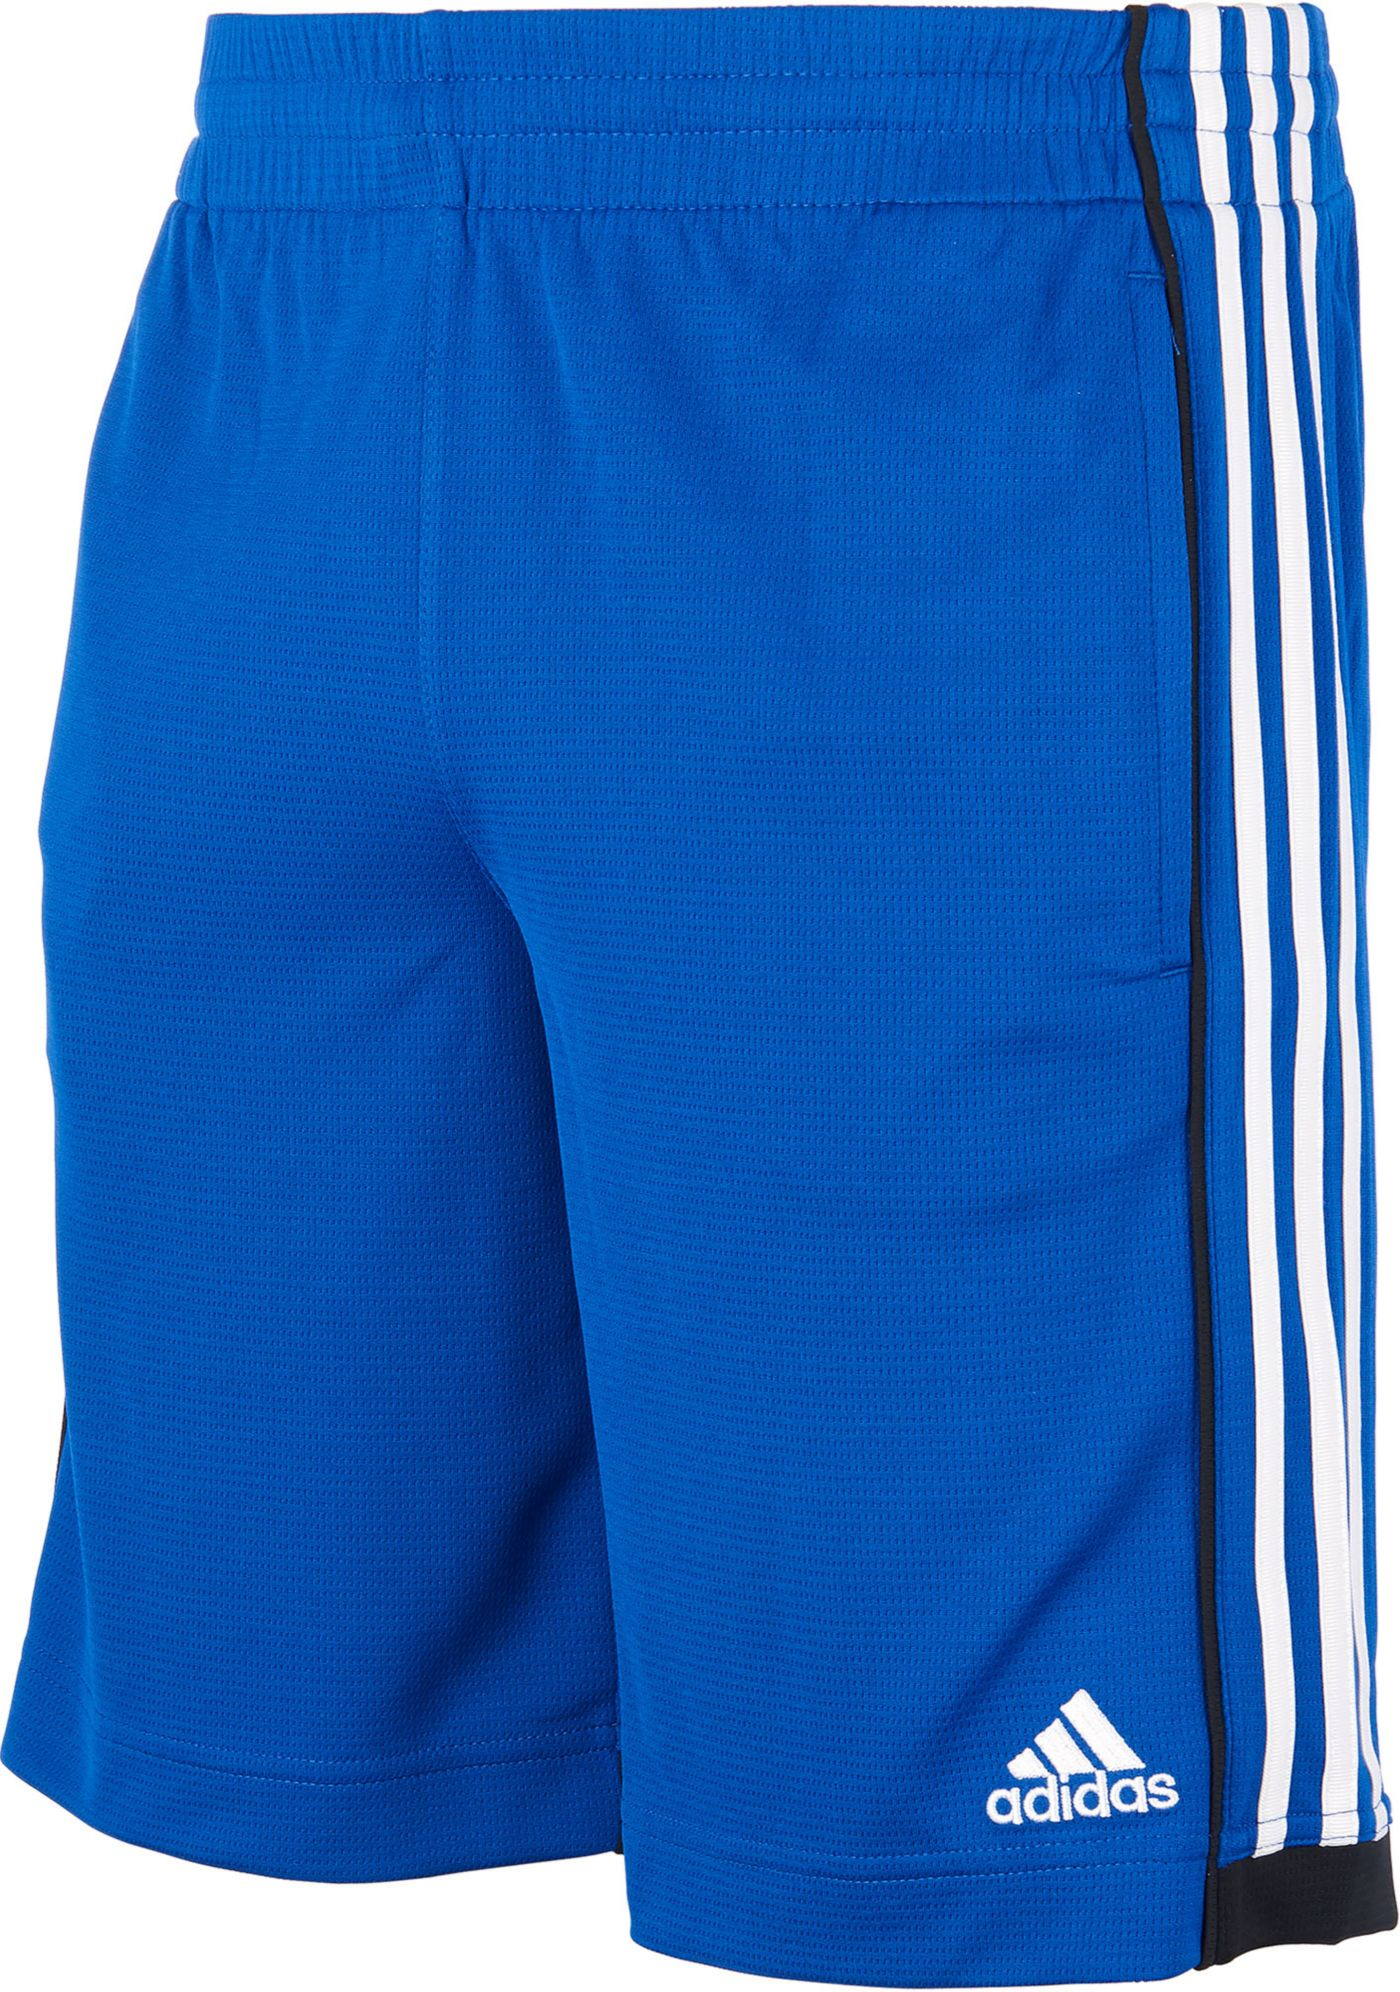 adidas Boys' Speed Shorts